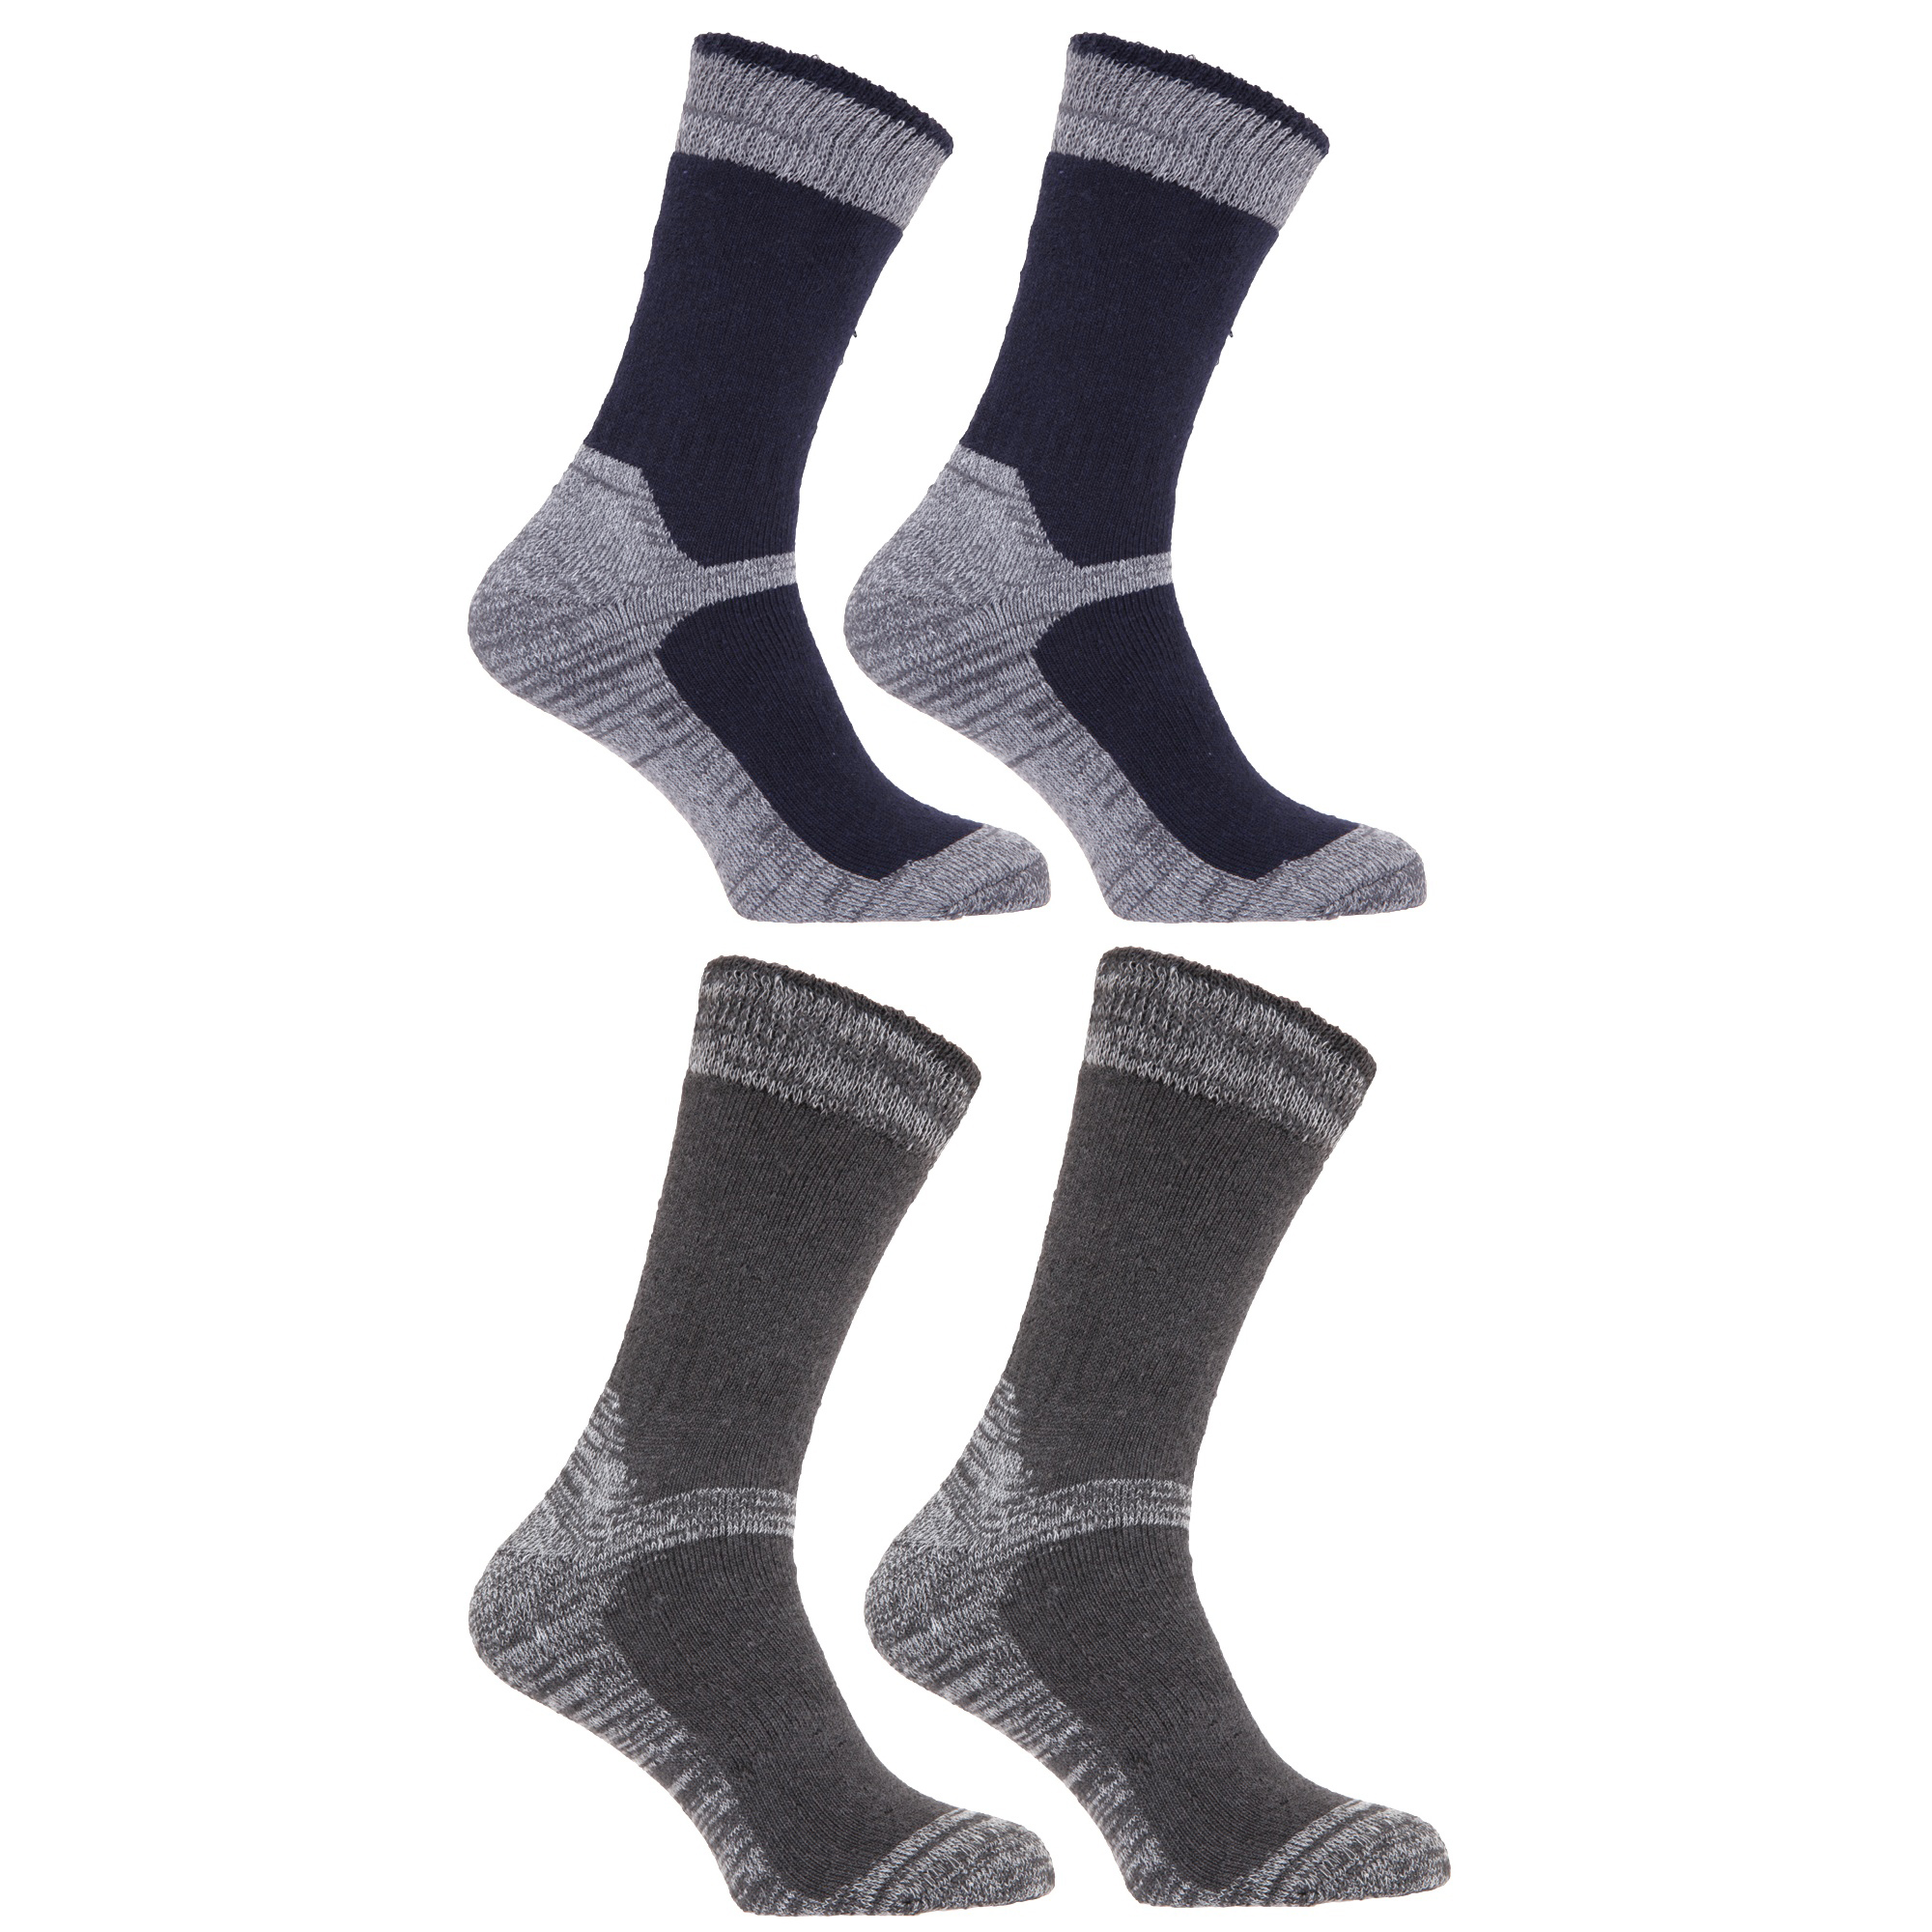 mens heavy weight reinforced toe work boot socks pack of 4